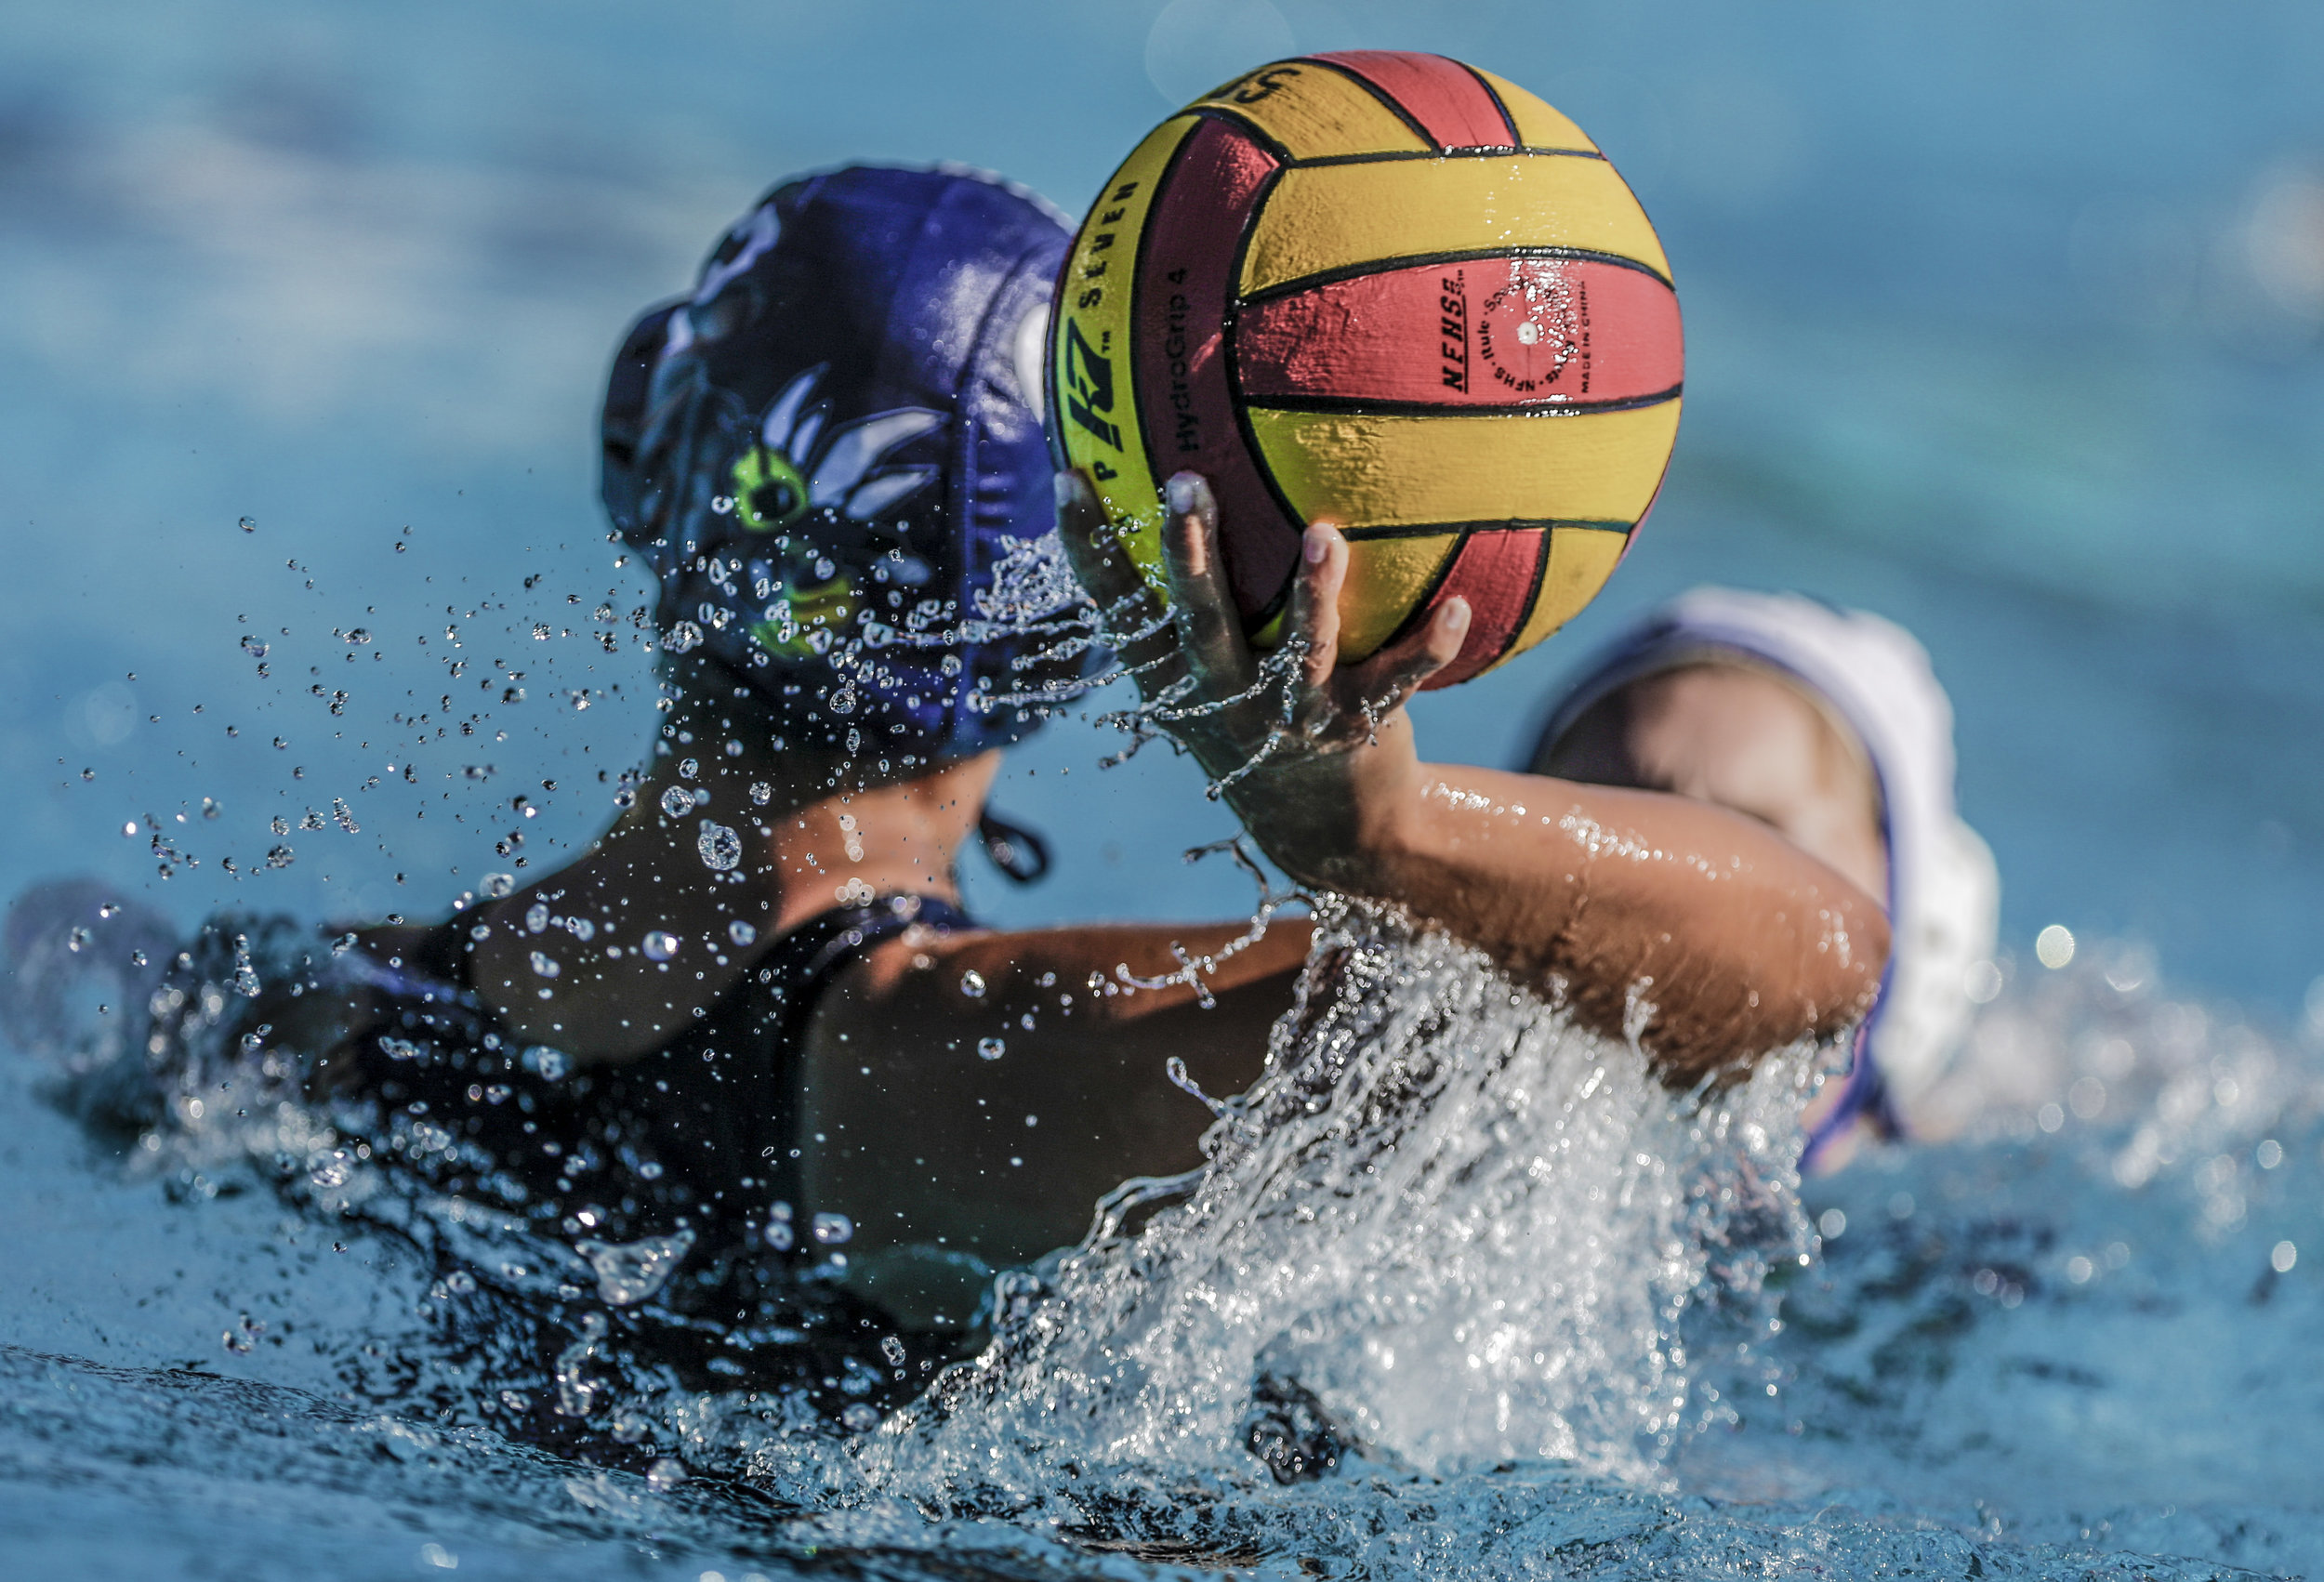 11-3-16-WaterPolo_C-318.jpg